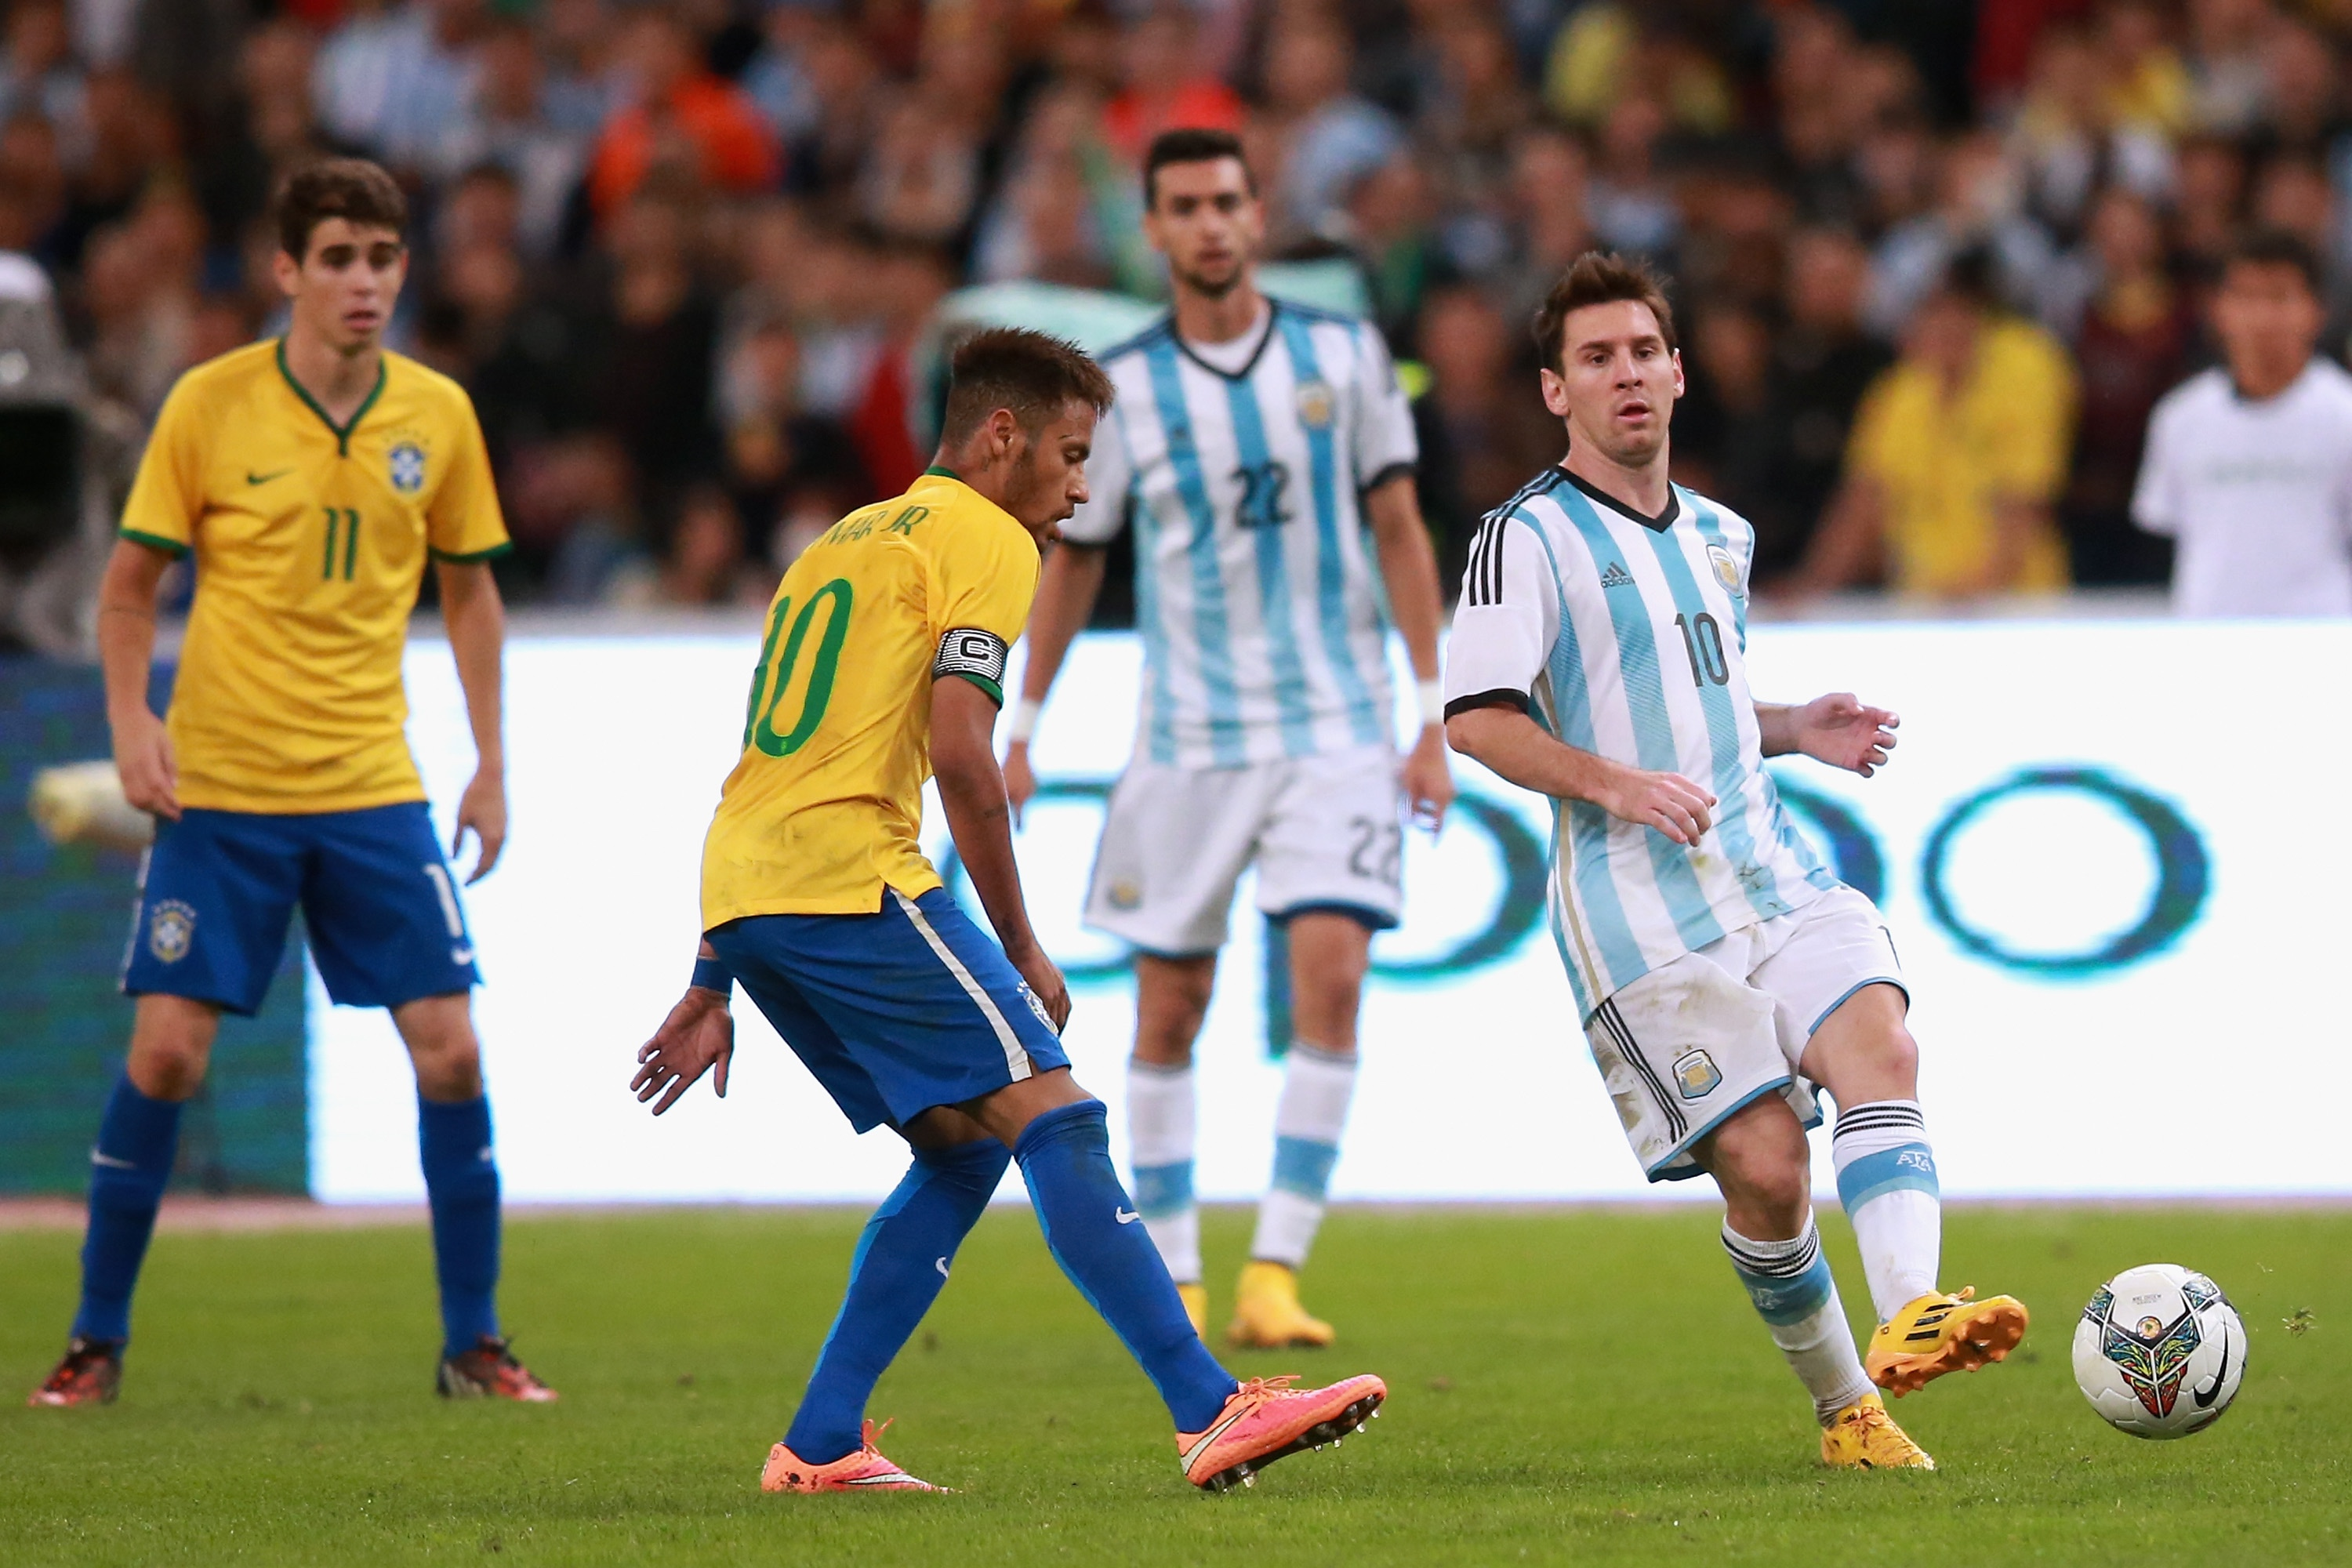 Brazilians Reach New Level of Petty, Root For Their Team to Lose to Screw Over Argentina